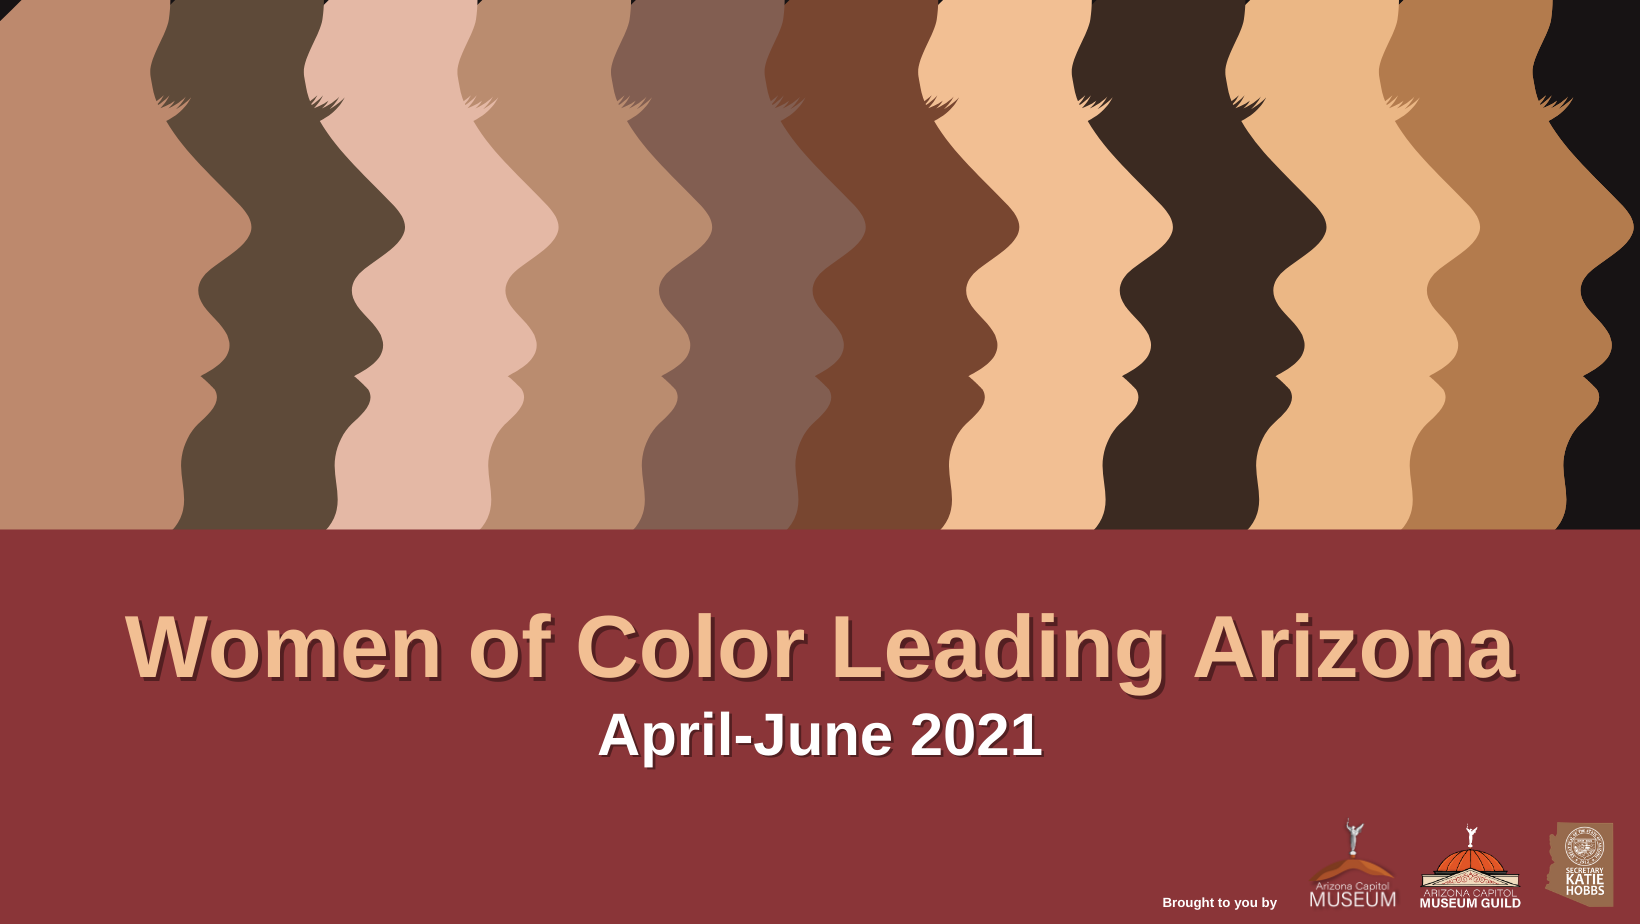 Women of Color Leading Arizona